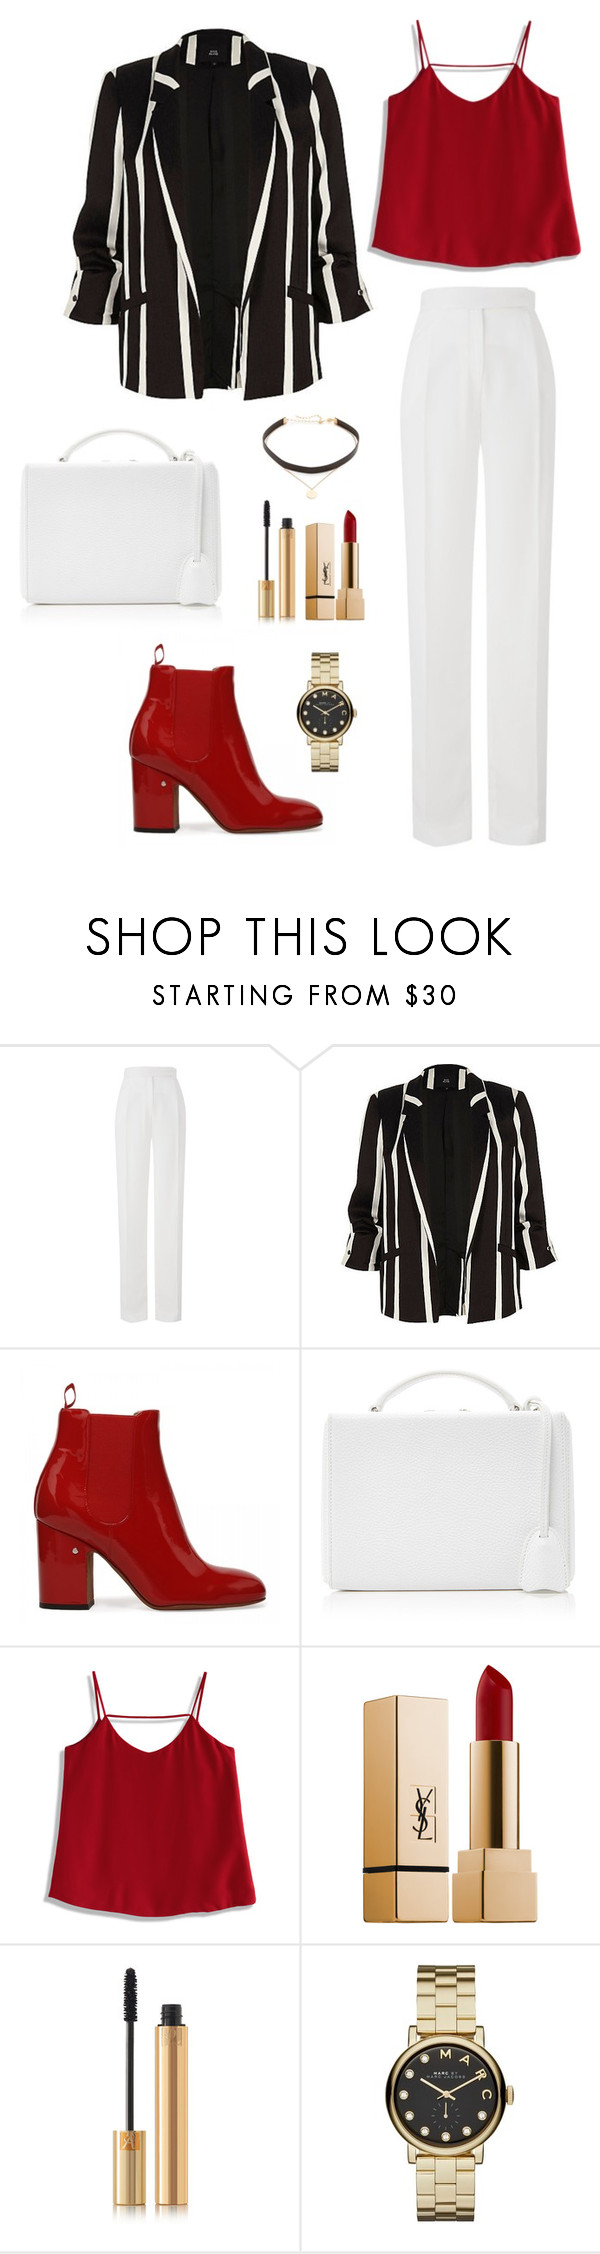 """Untitled #314"" by bajka2468 on Polyvore featuring Amanda Wakeley, Mark Cross, Chicwish, Yves Saint Laurent, Marc by Marc Jacobs and Jennifer Zeuner"